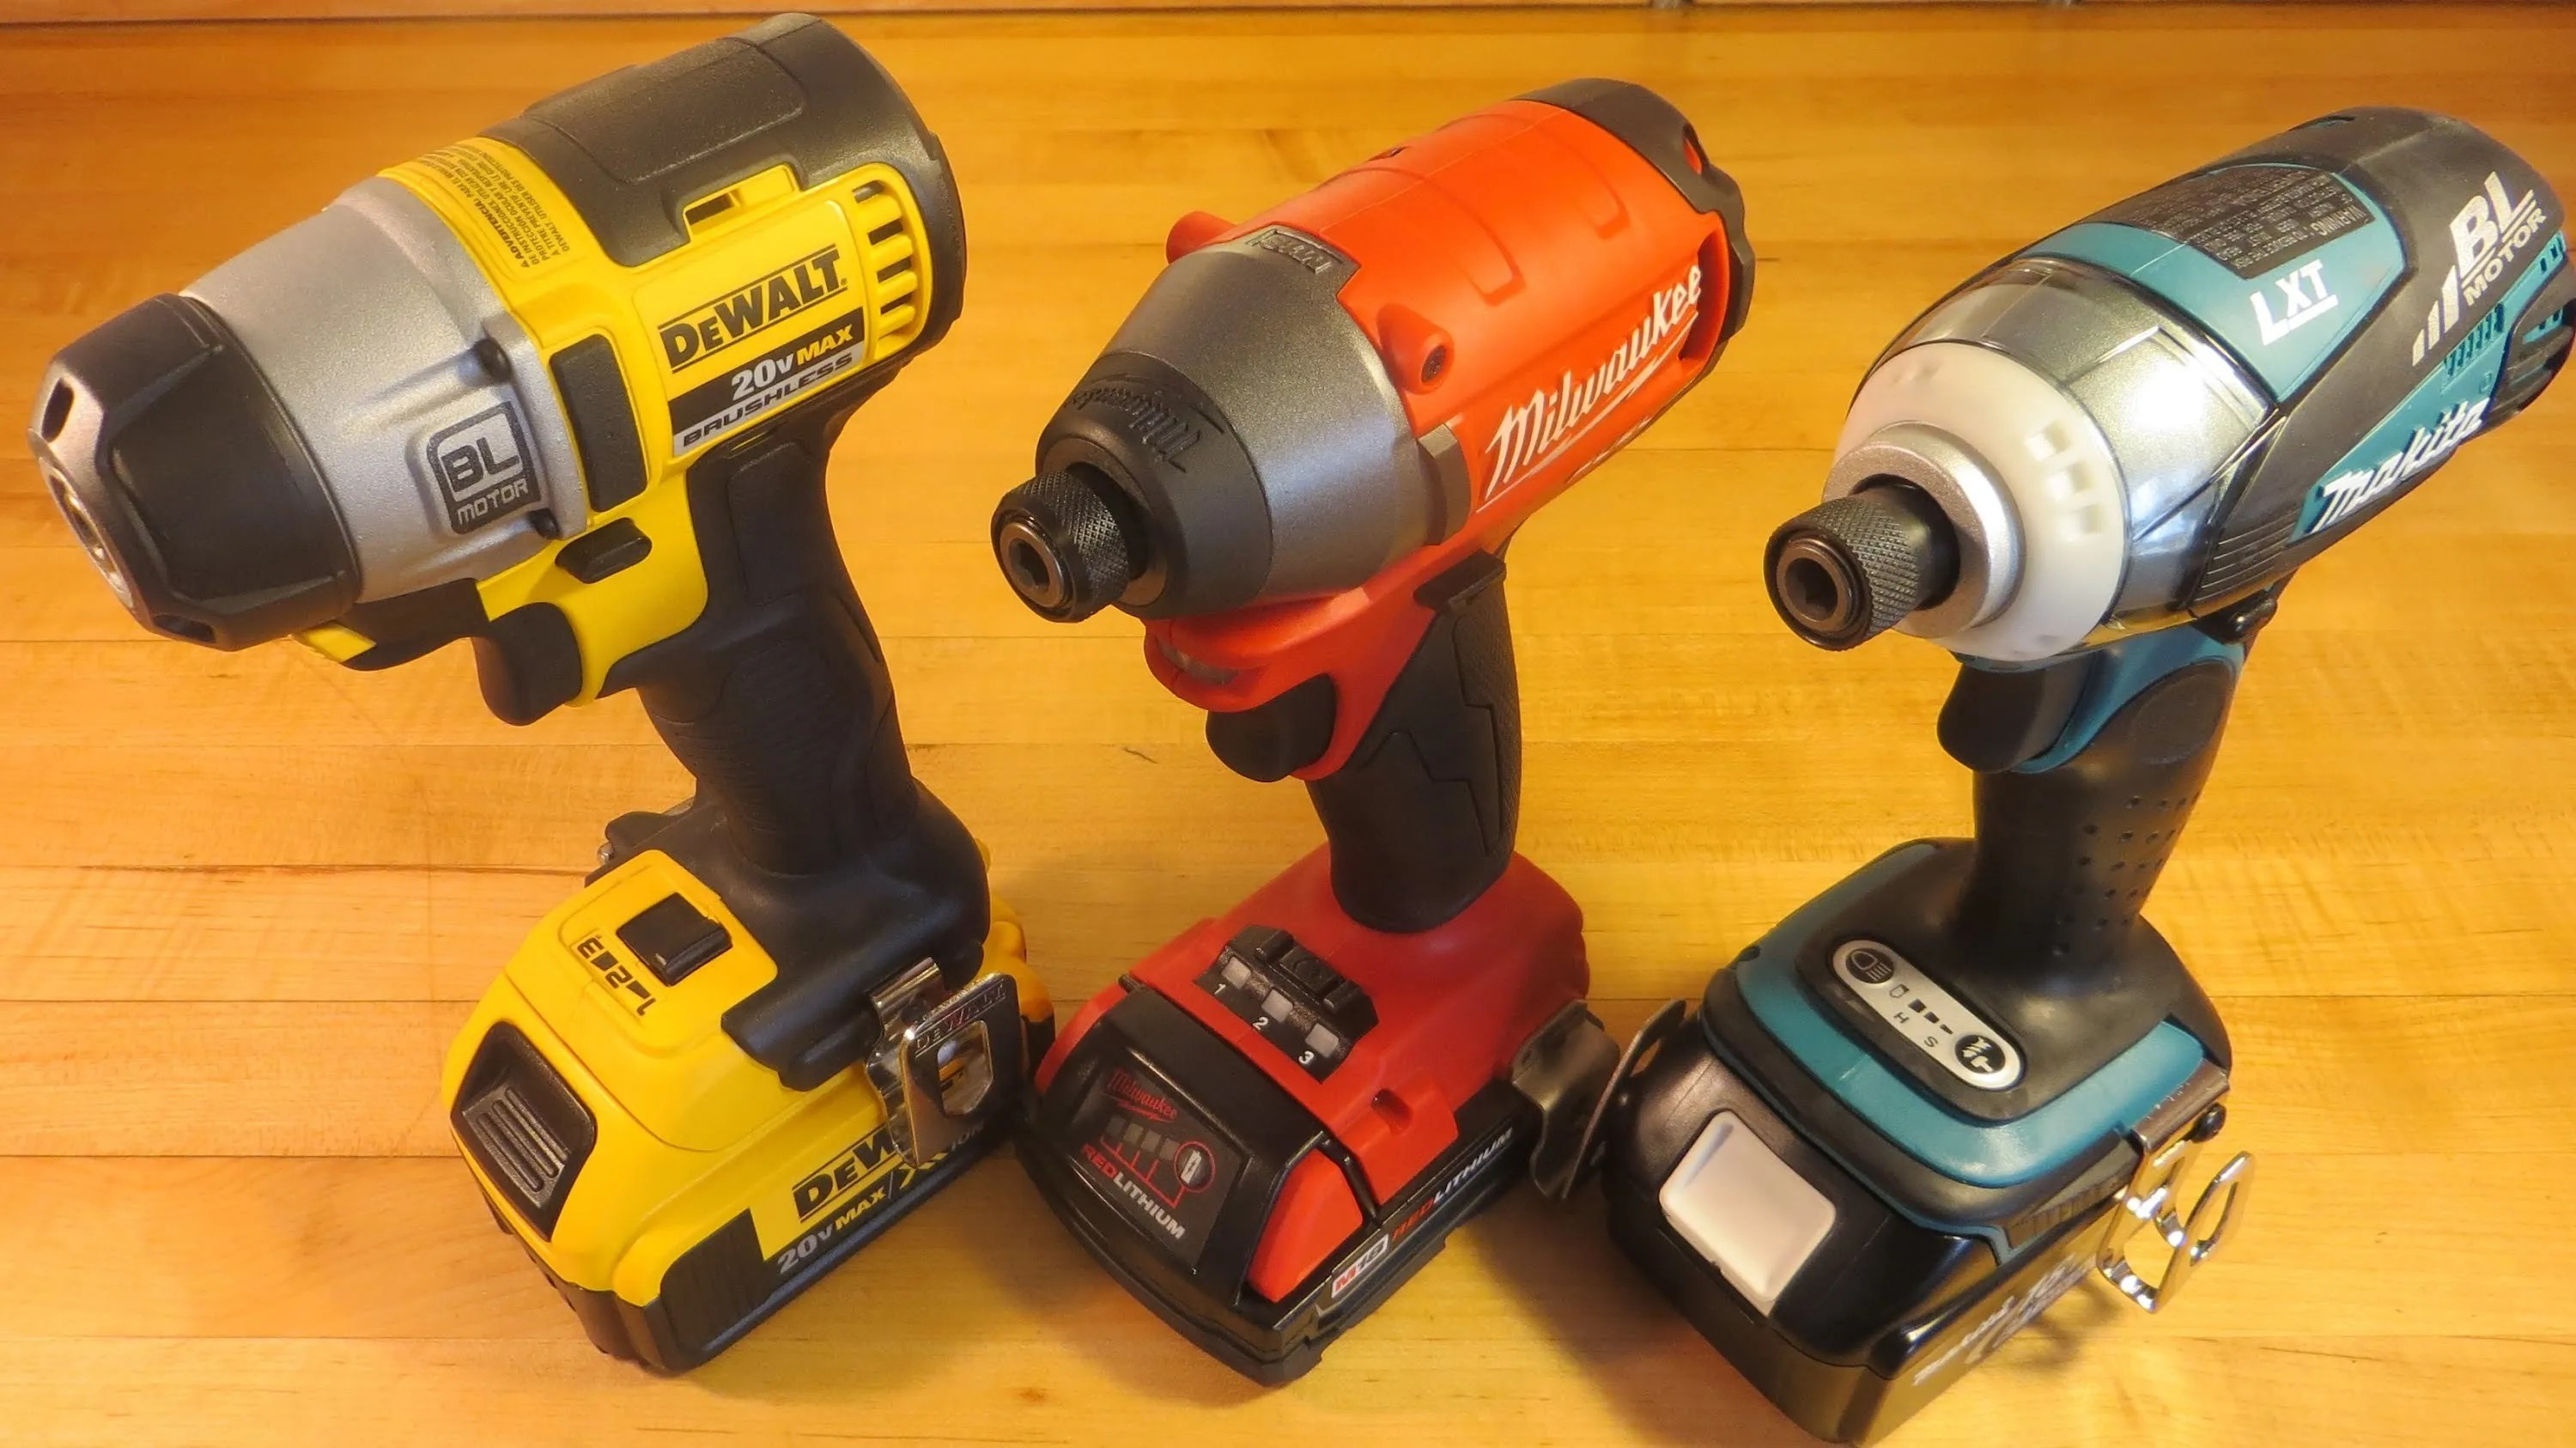 dewalt vs milwaukee vs makita